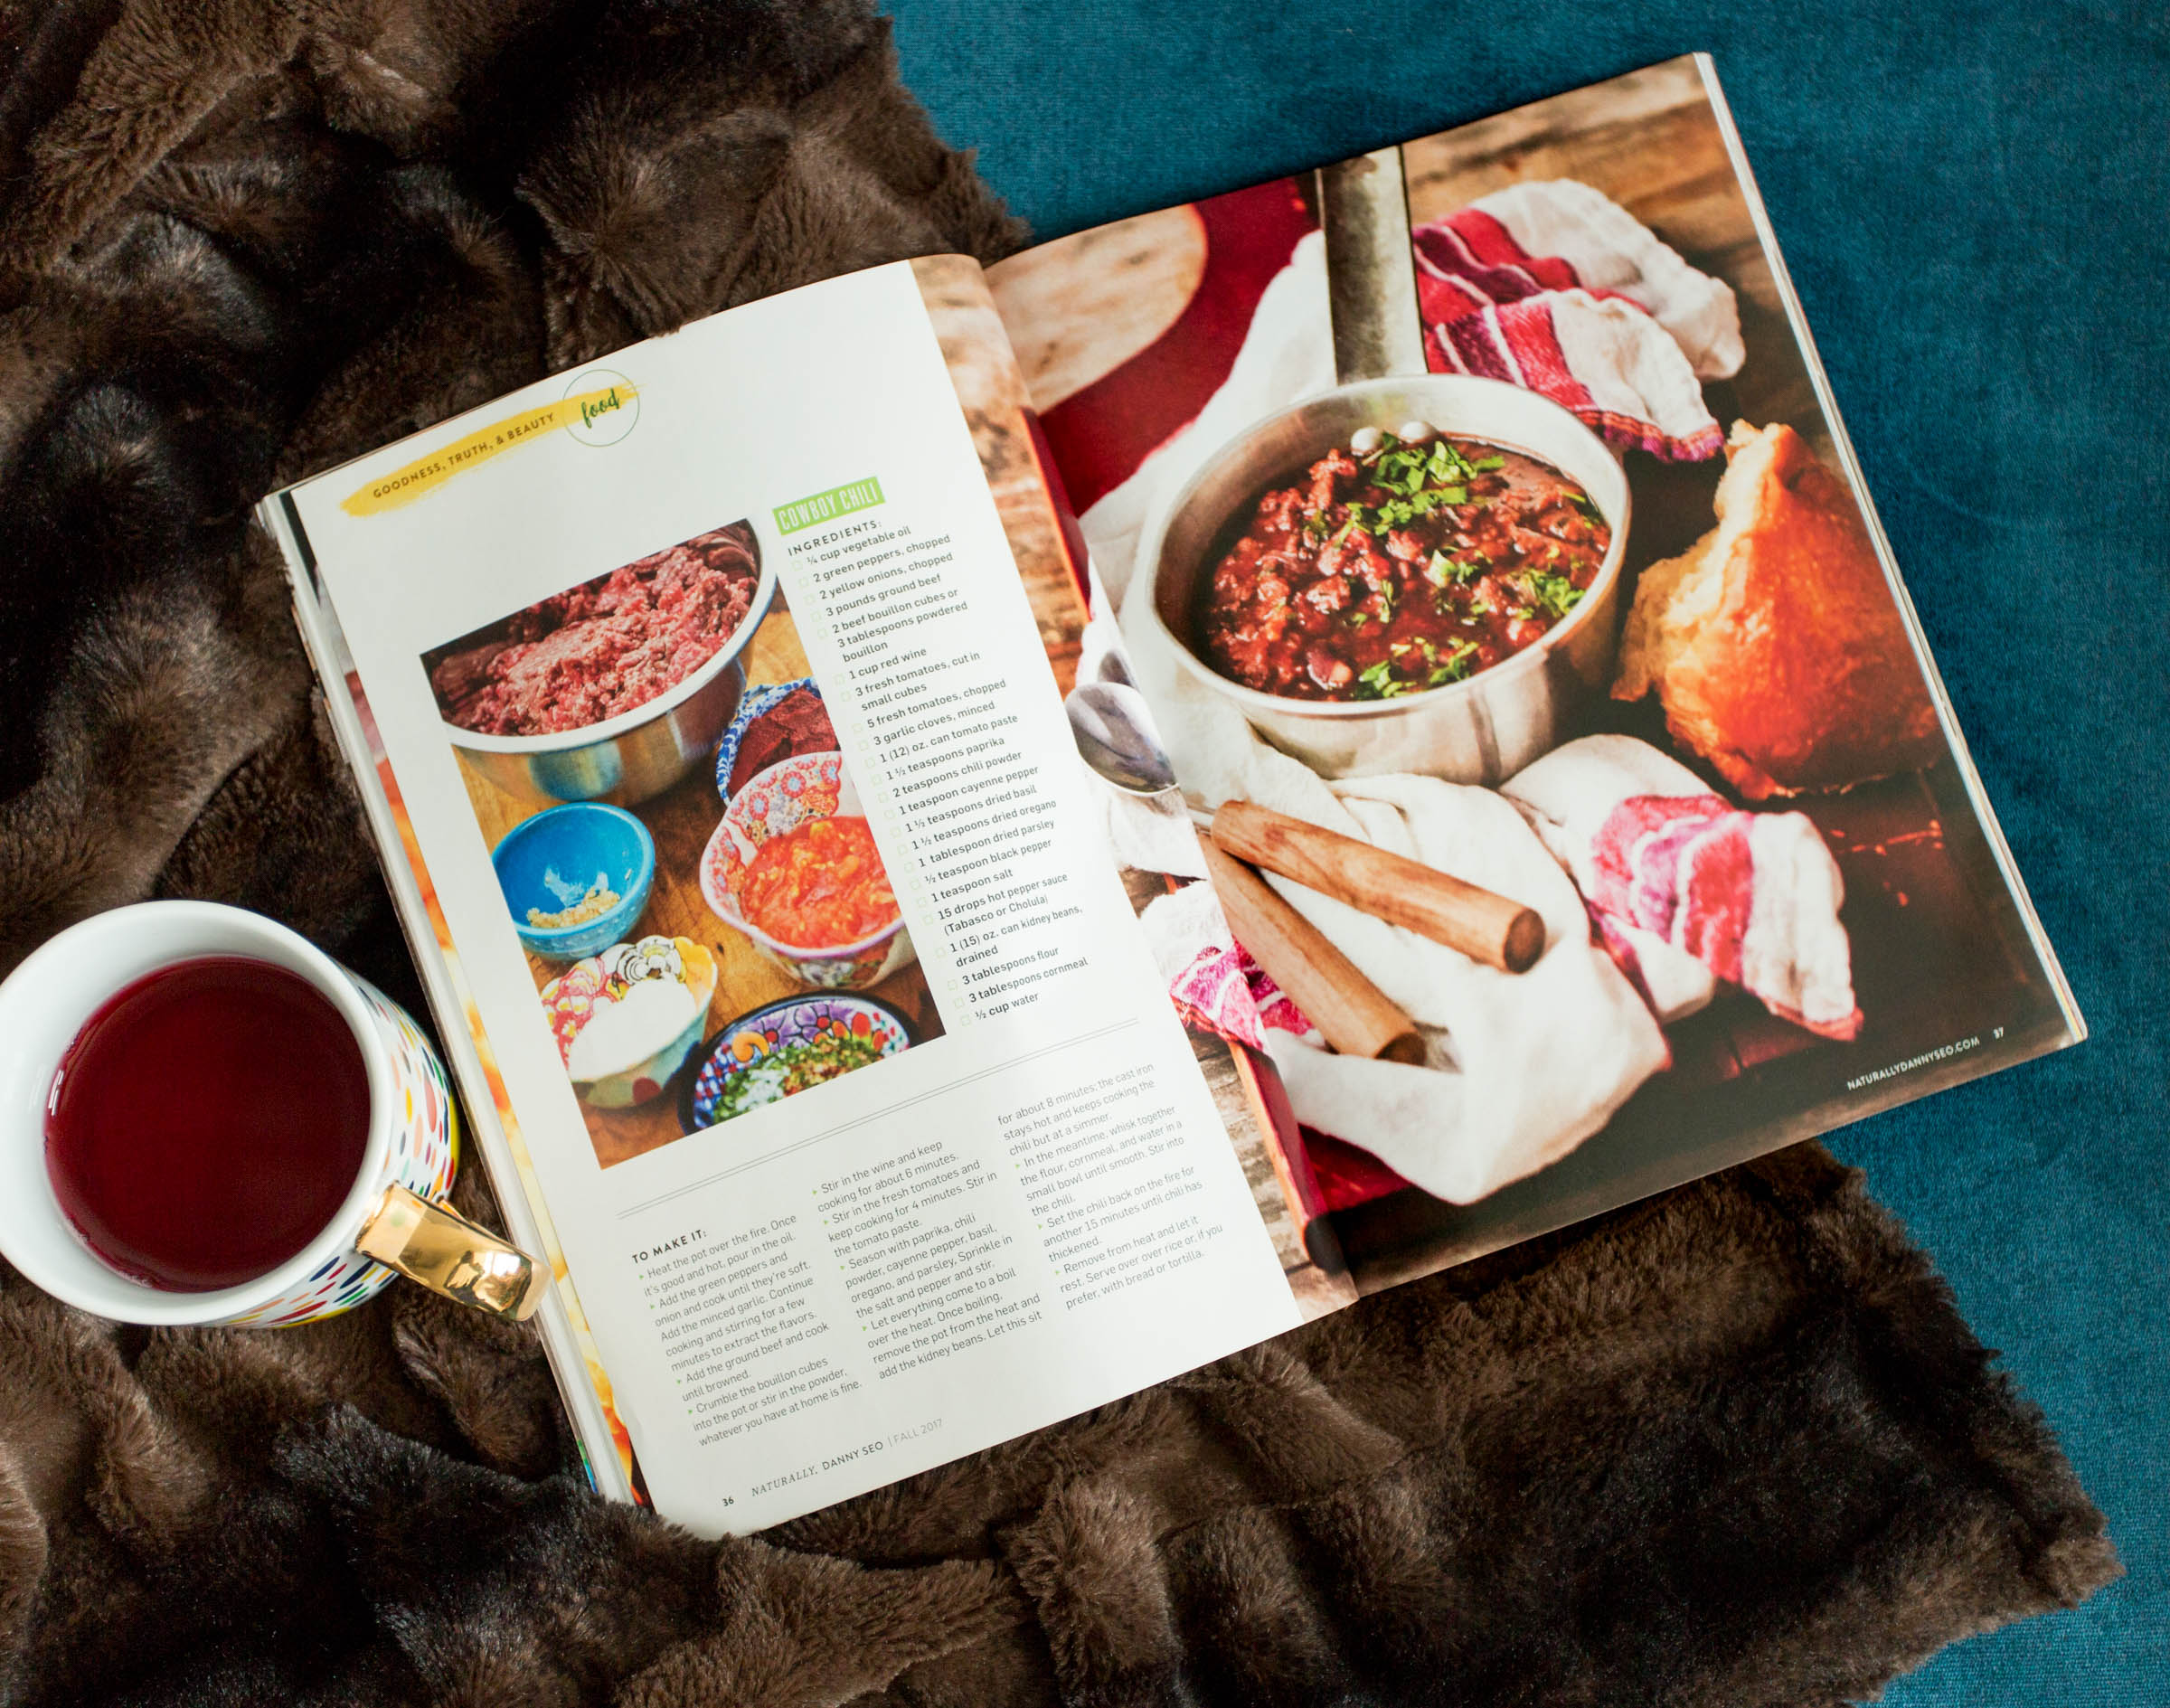 Cowboy chili recipe featured in Naturally, Danny Seo Magazine